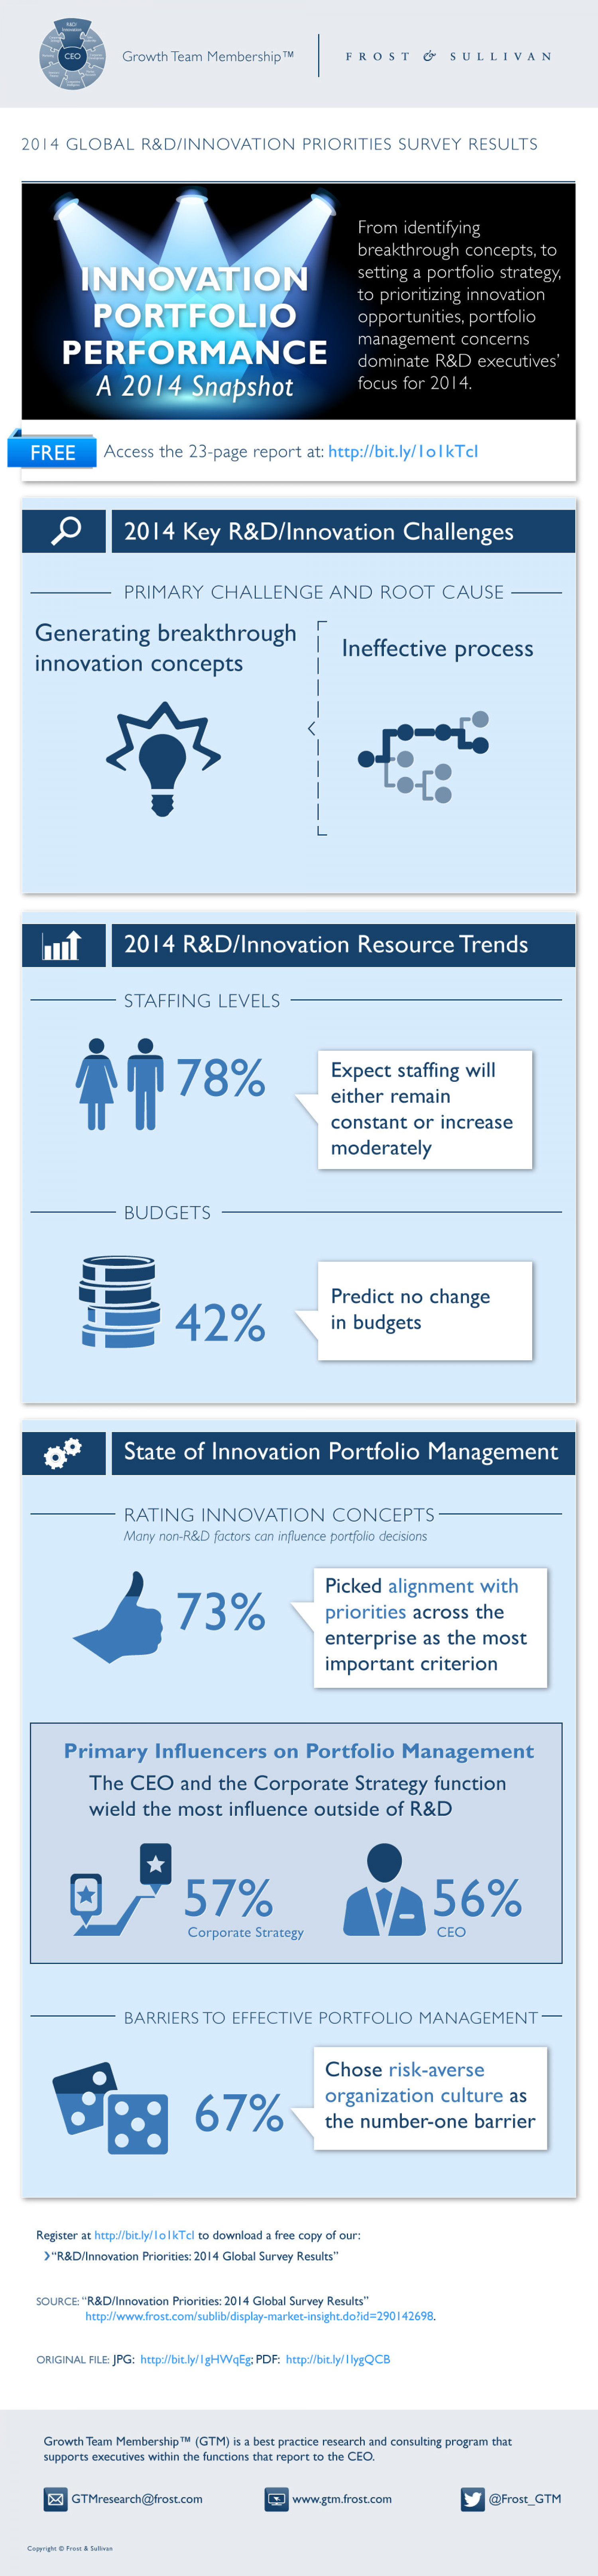 Innovation Portfolio Performance: A 2014 Snapshot Infographic